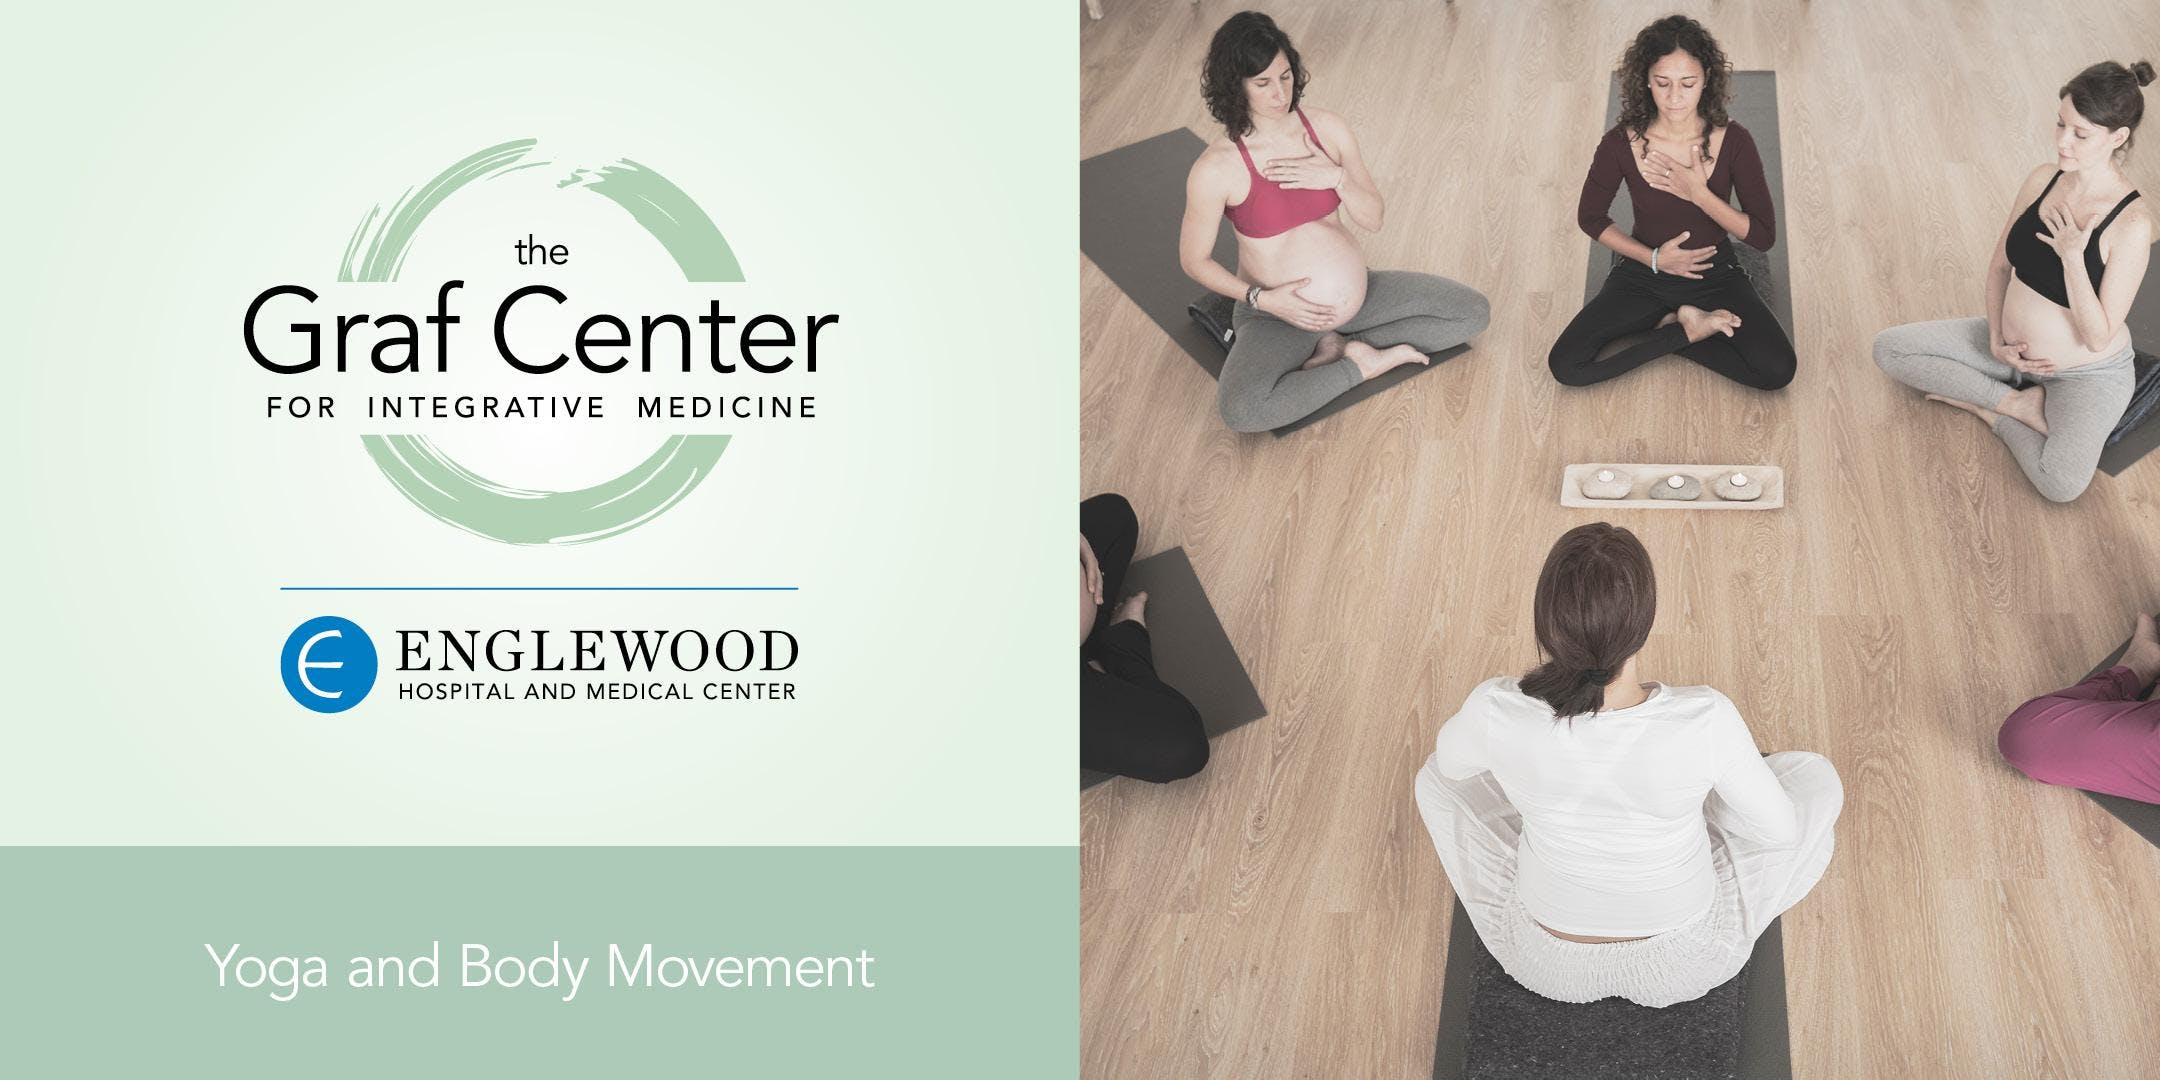 More info: Prenatal Yoga and Meditation